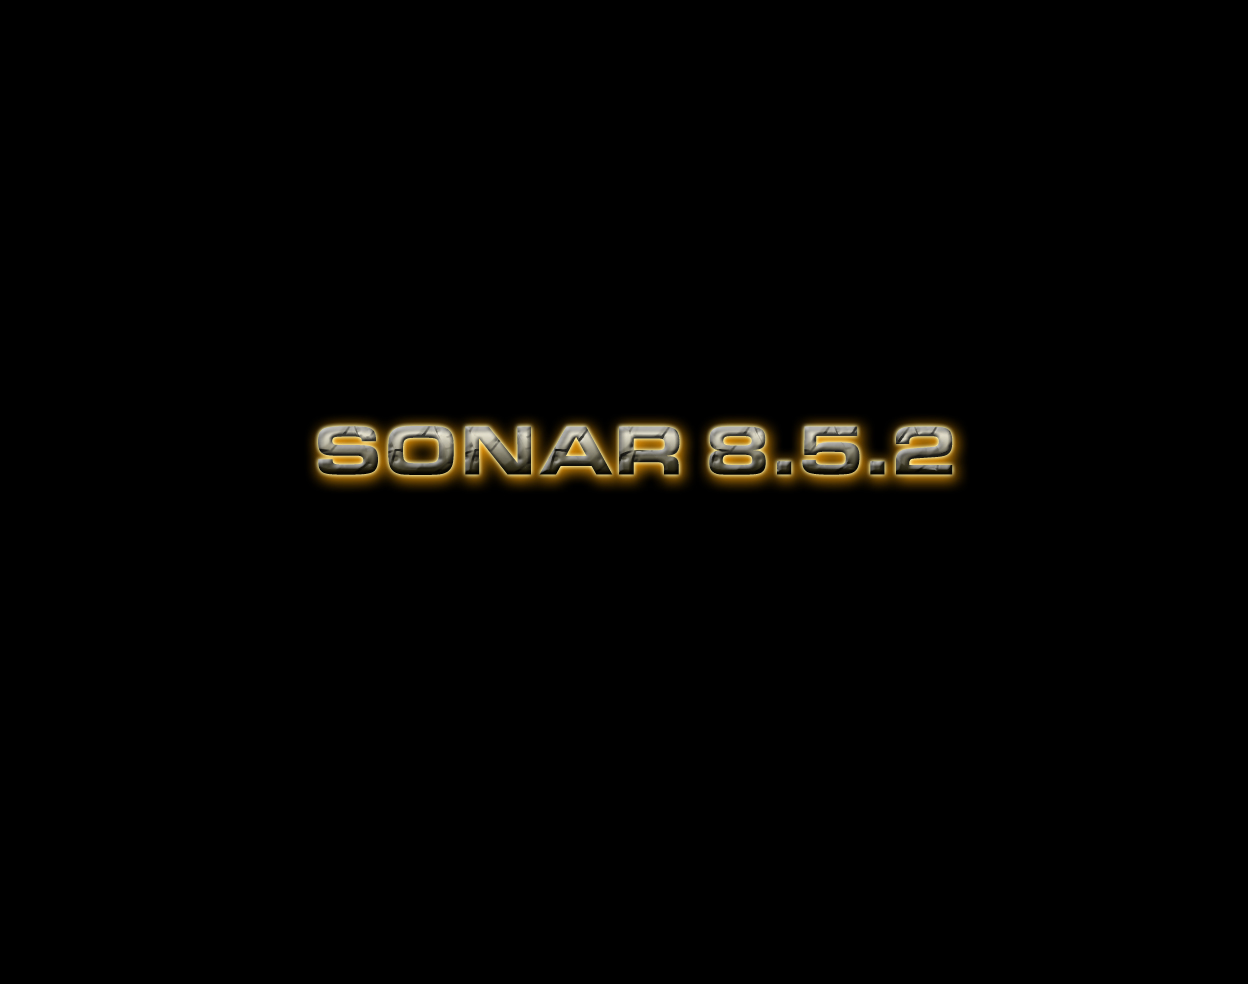 Sonar 852 Wallpaper